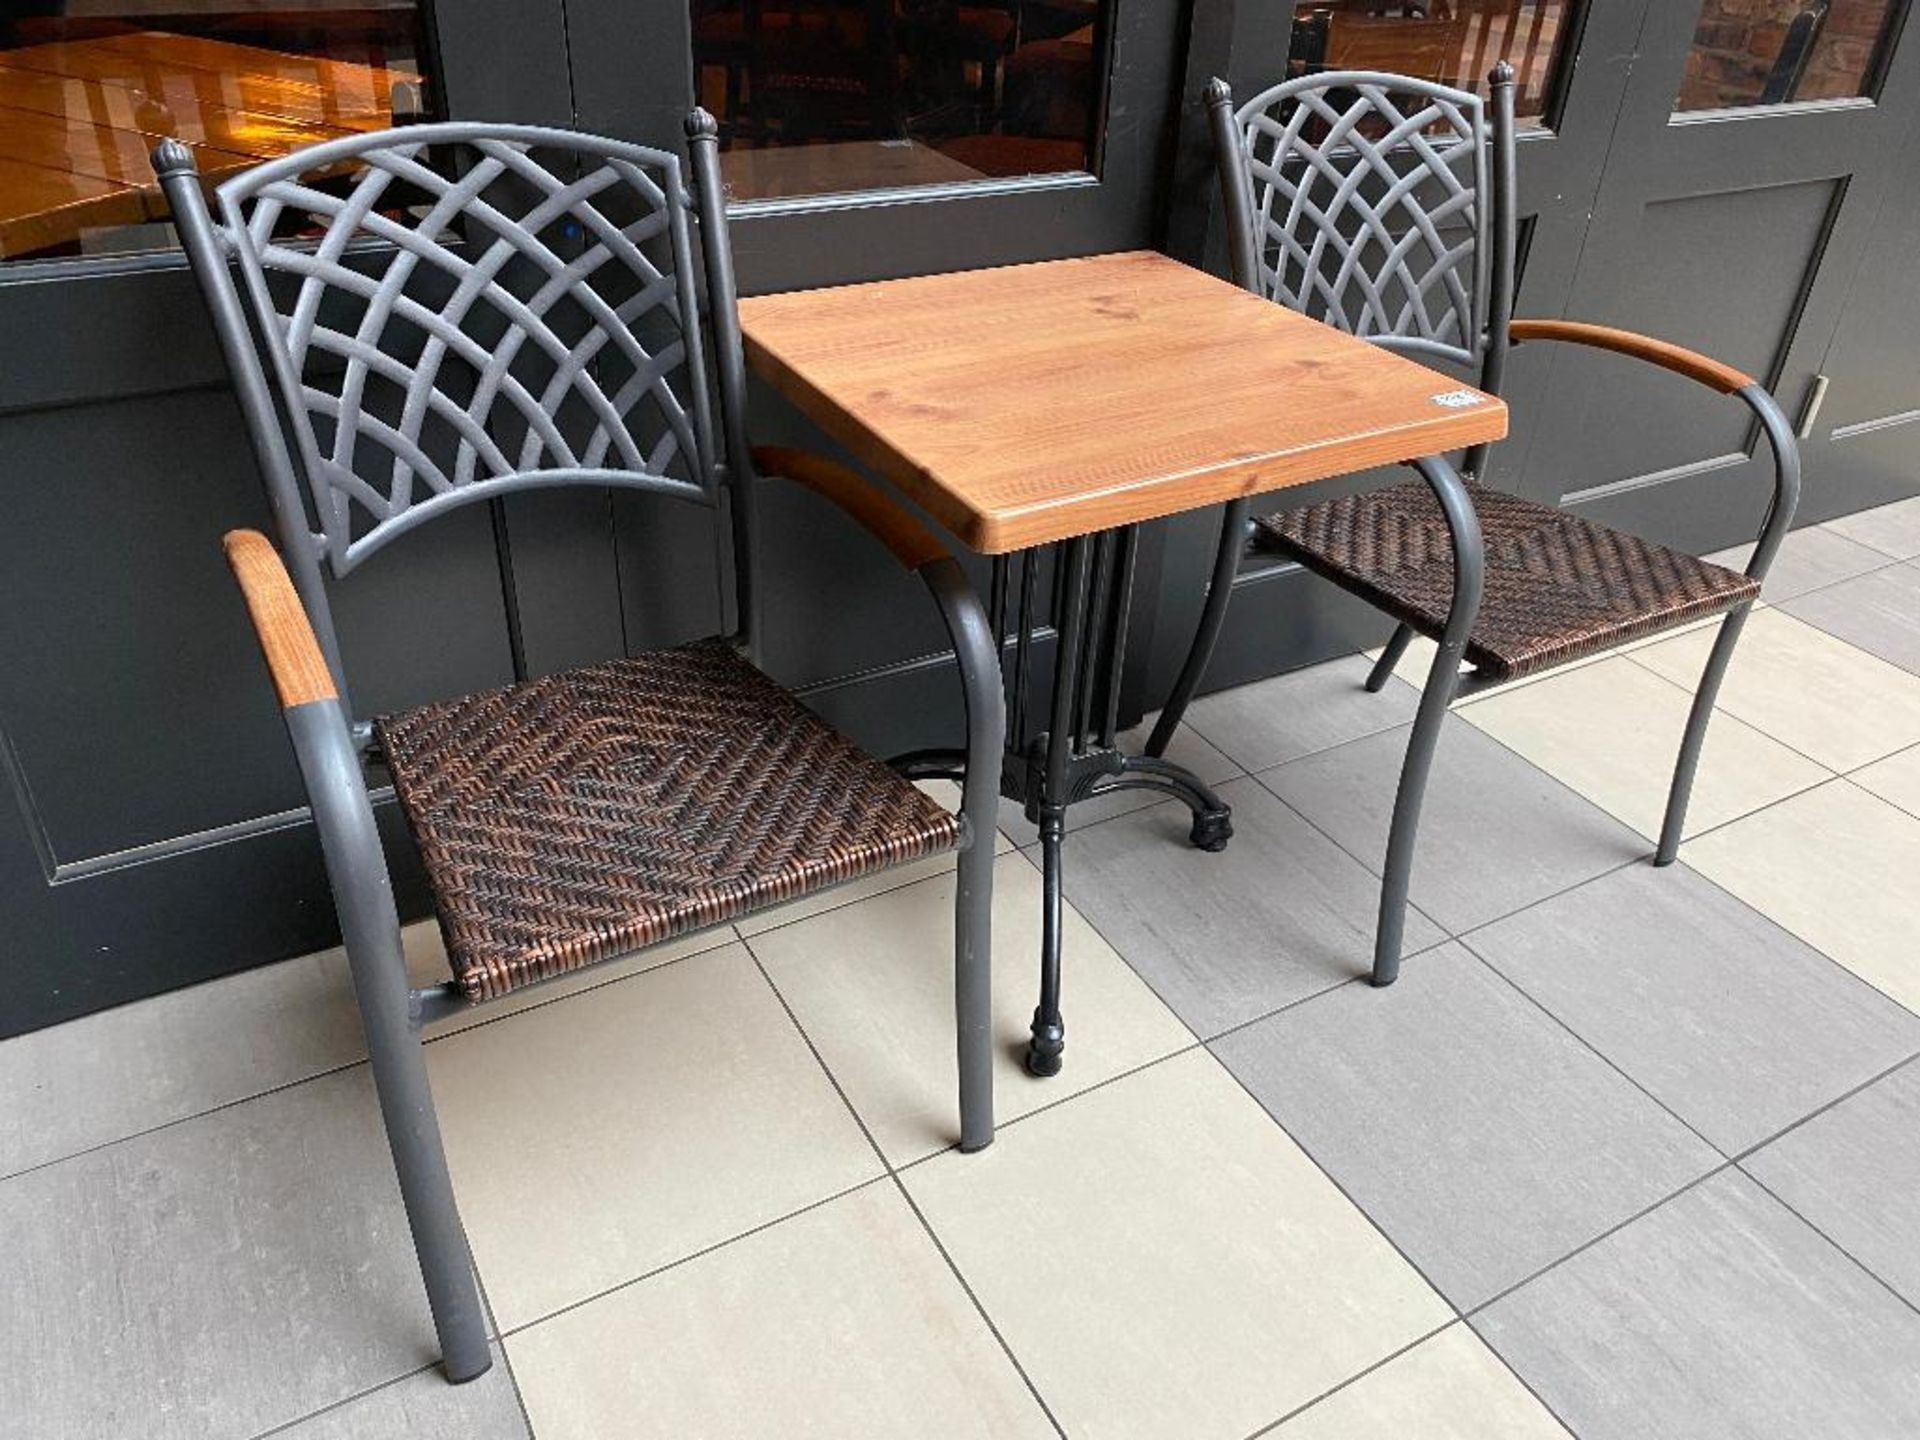 """TOPALIT 23"""" X 23"""" PATIO TABLE WITH 2 CHAIRS - Image 2 of 2"""